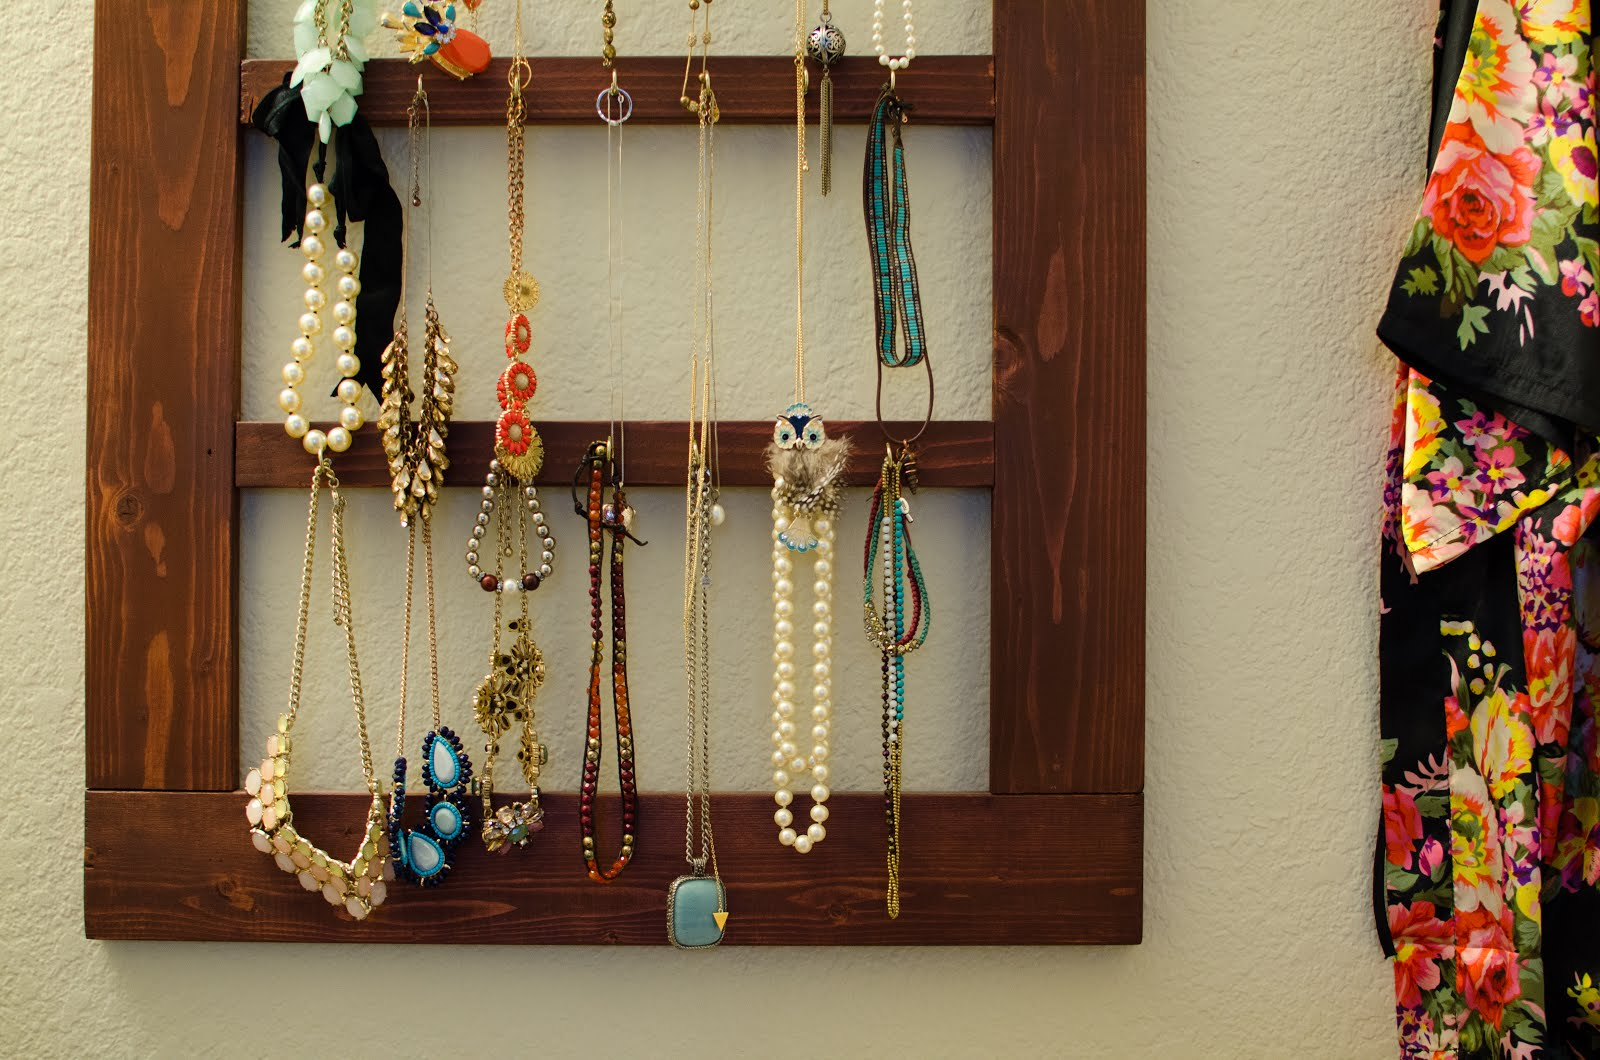 Foreign Room: My Homemade Jewelry Hanger